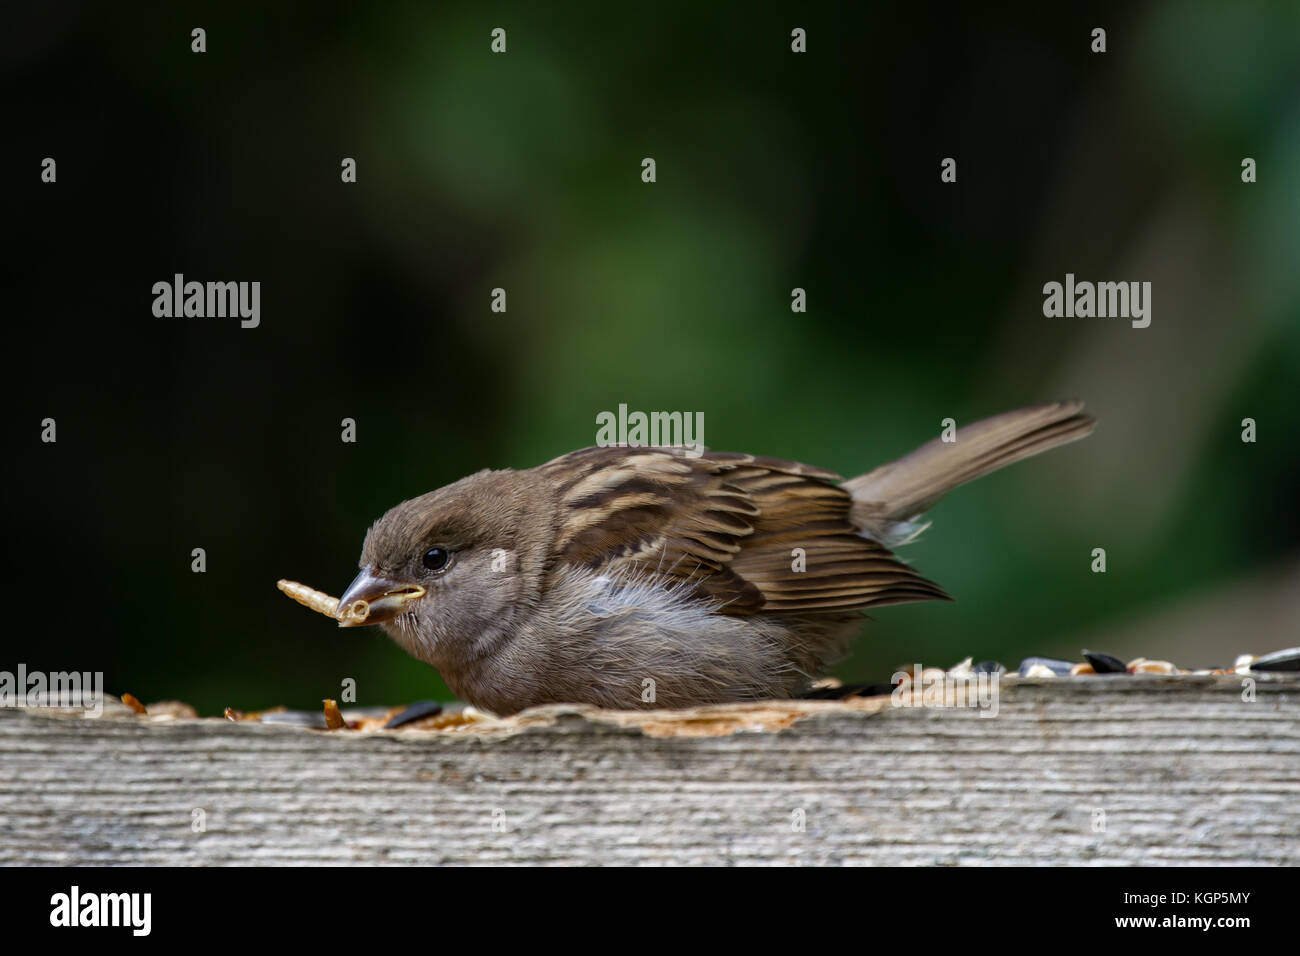 sparrows point divorced singles Sparrow's point is an unincorporated community in baltimore county, maryland,  adjacent to dundalk named for thomas sparrow, landowner, it was the site of.